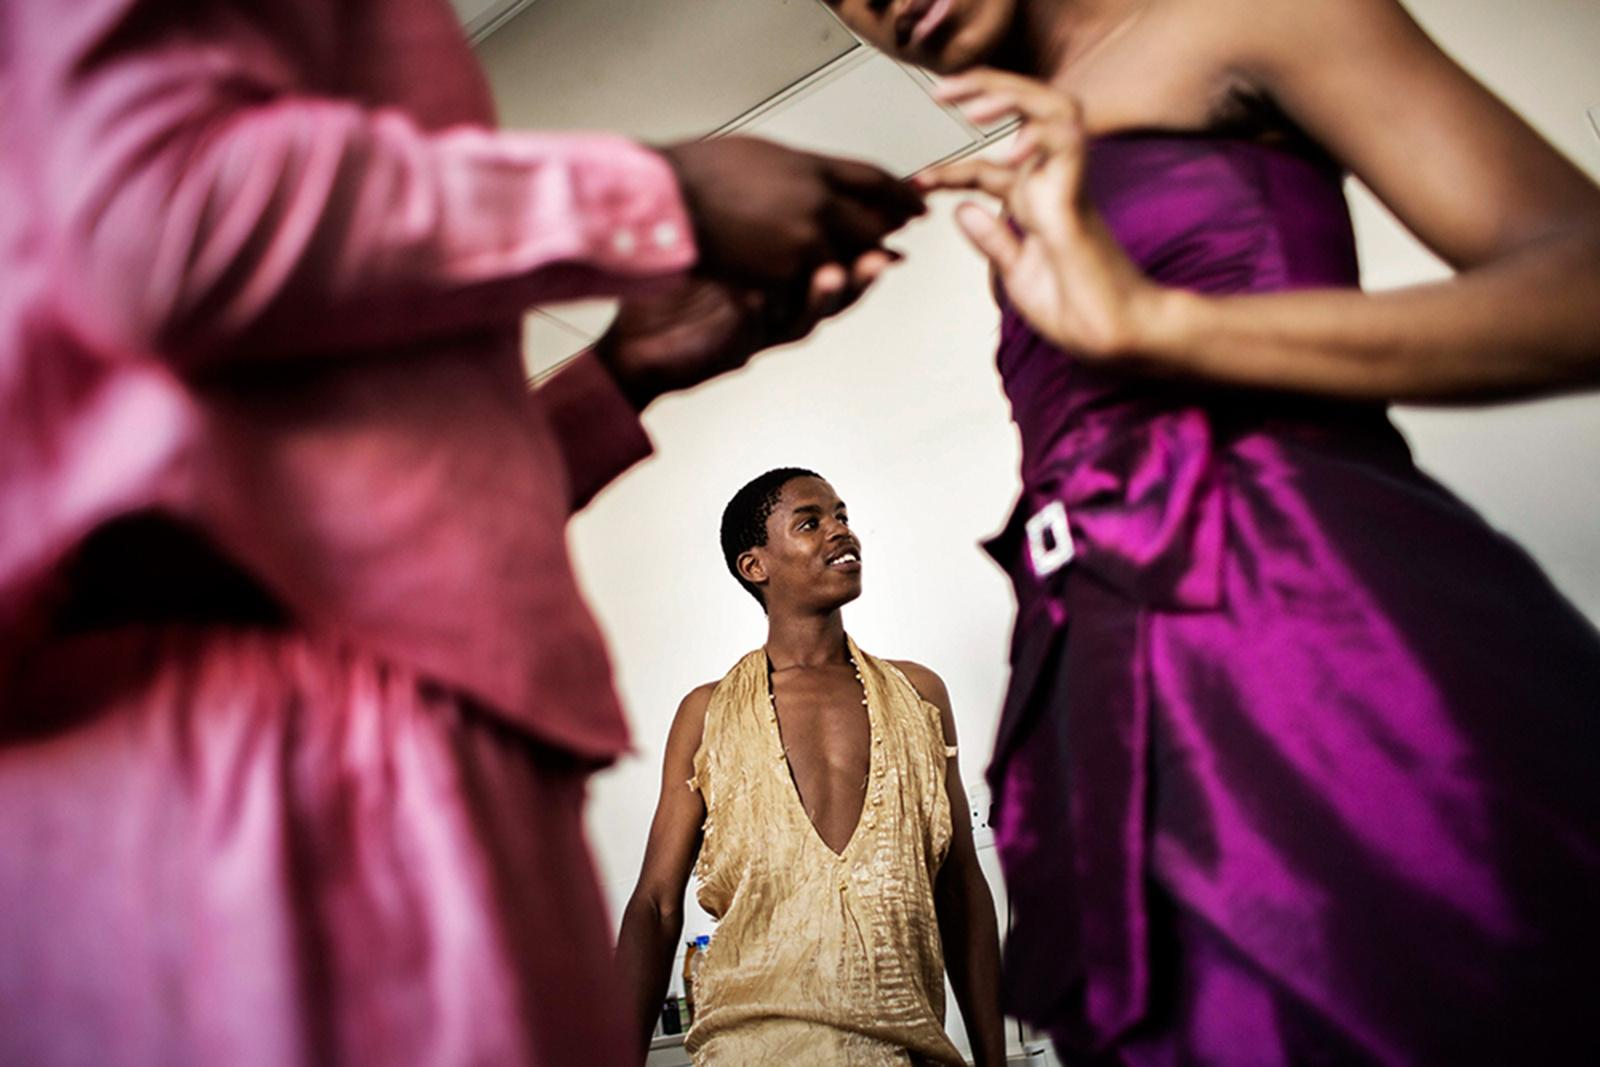 EAST LONDON, SOUTH AFRICA - SEPTEMBER 26, 2014: In preparation for the 'Miss Trans Diva' event on September 27, 2014 transgender woman Lazola Canzibe (C), 24, and some of her fellow contestants try on dresses at the office building of S.H.E. (Social, Health And Empowerment Feminist Collective Of Transgender And Intersex Women Of Africa) September 26, 2014 in East London, South Africa. Focusing on human rights 'Miss Trans Diva' is the second annual beauty pageant for trans women of East London and surrounding areas.